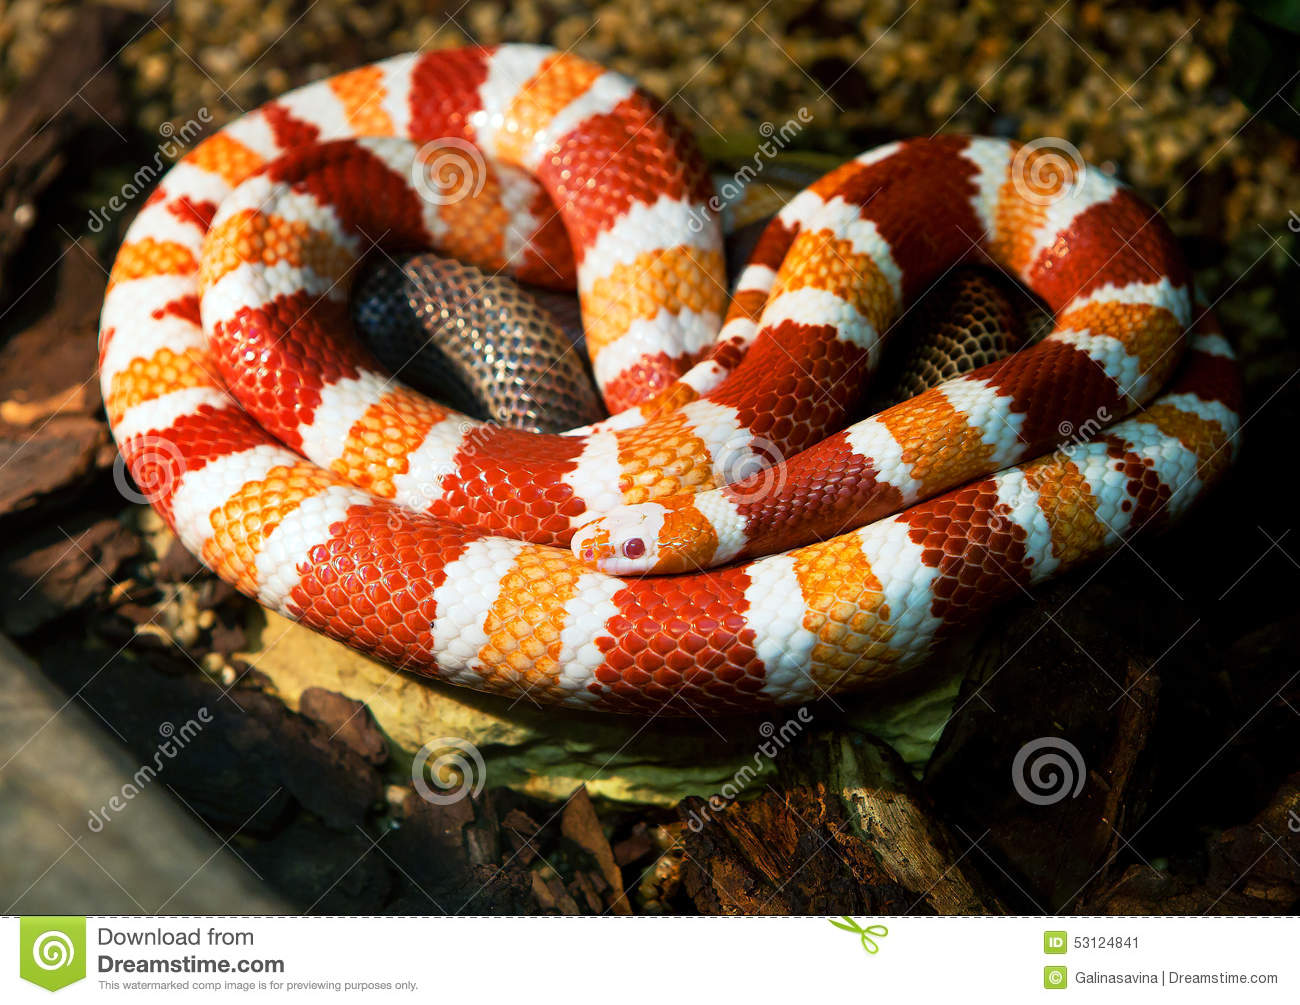 Honduran Milk Snake Stock Photo Image 53124841